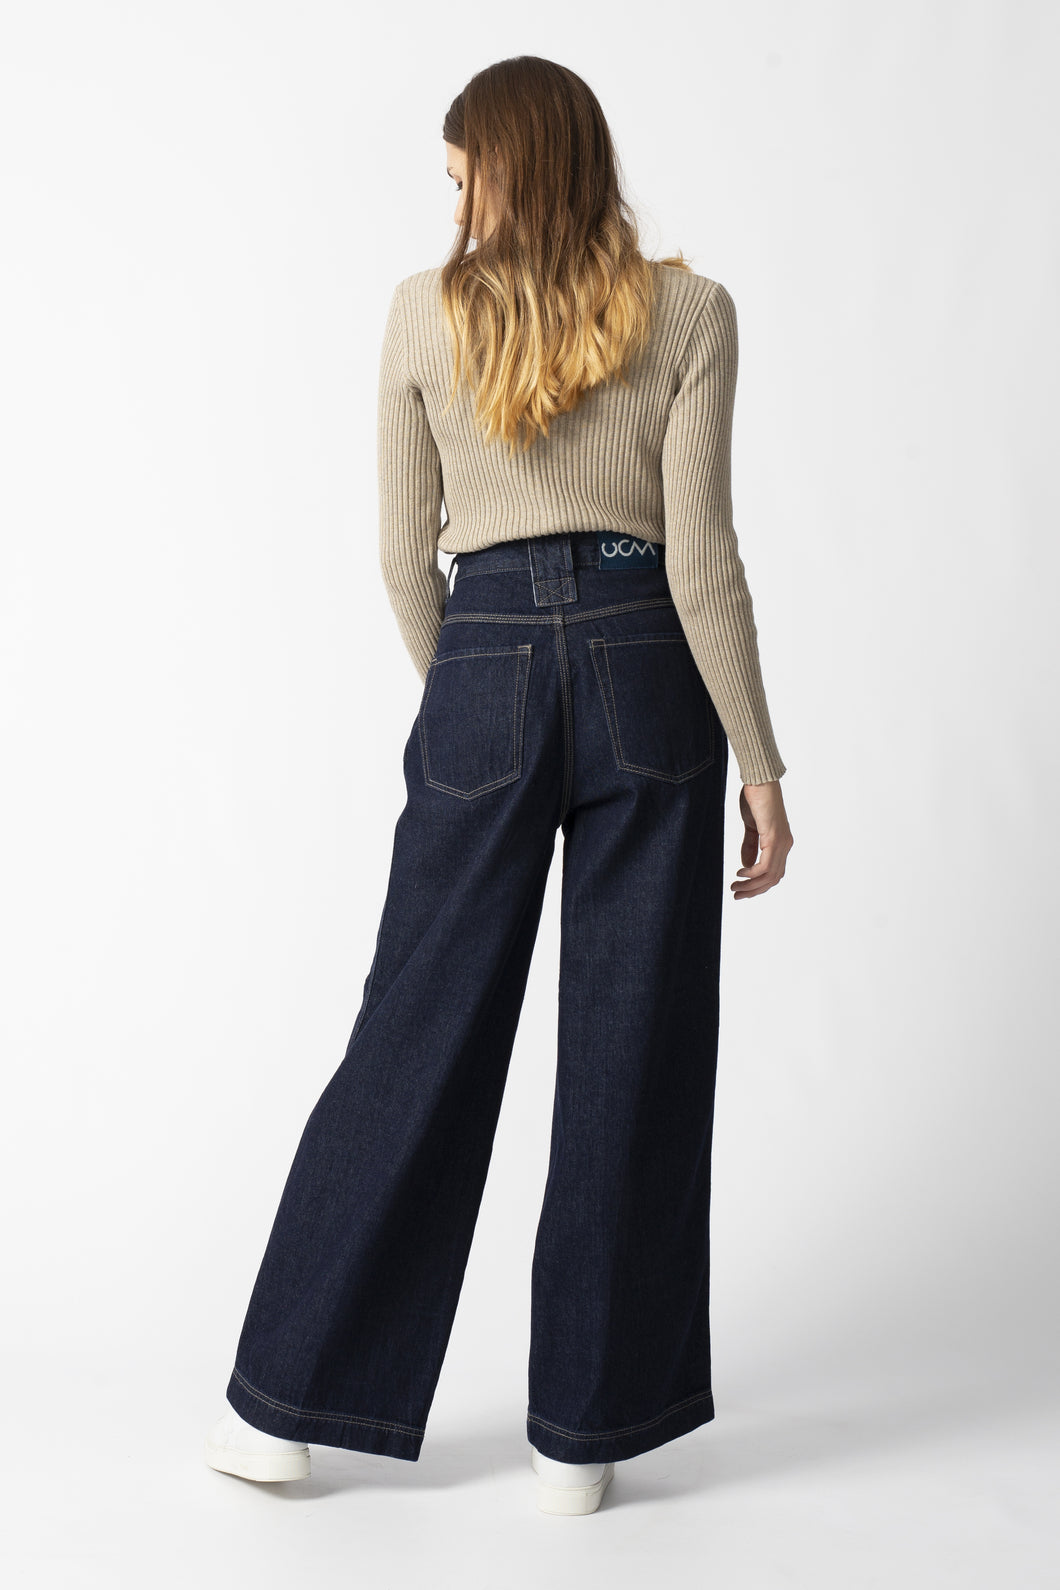 Wide Leg Denim Jeans - Skater Denim - United Change Makers - Organic Jeans